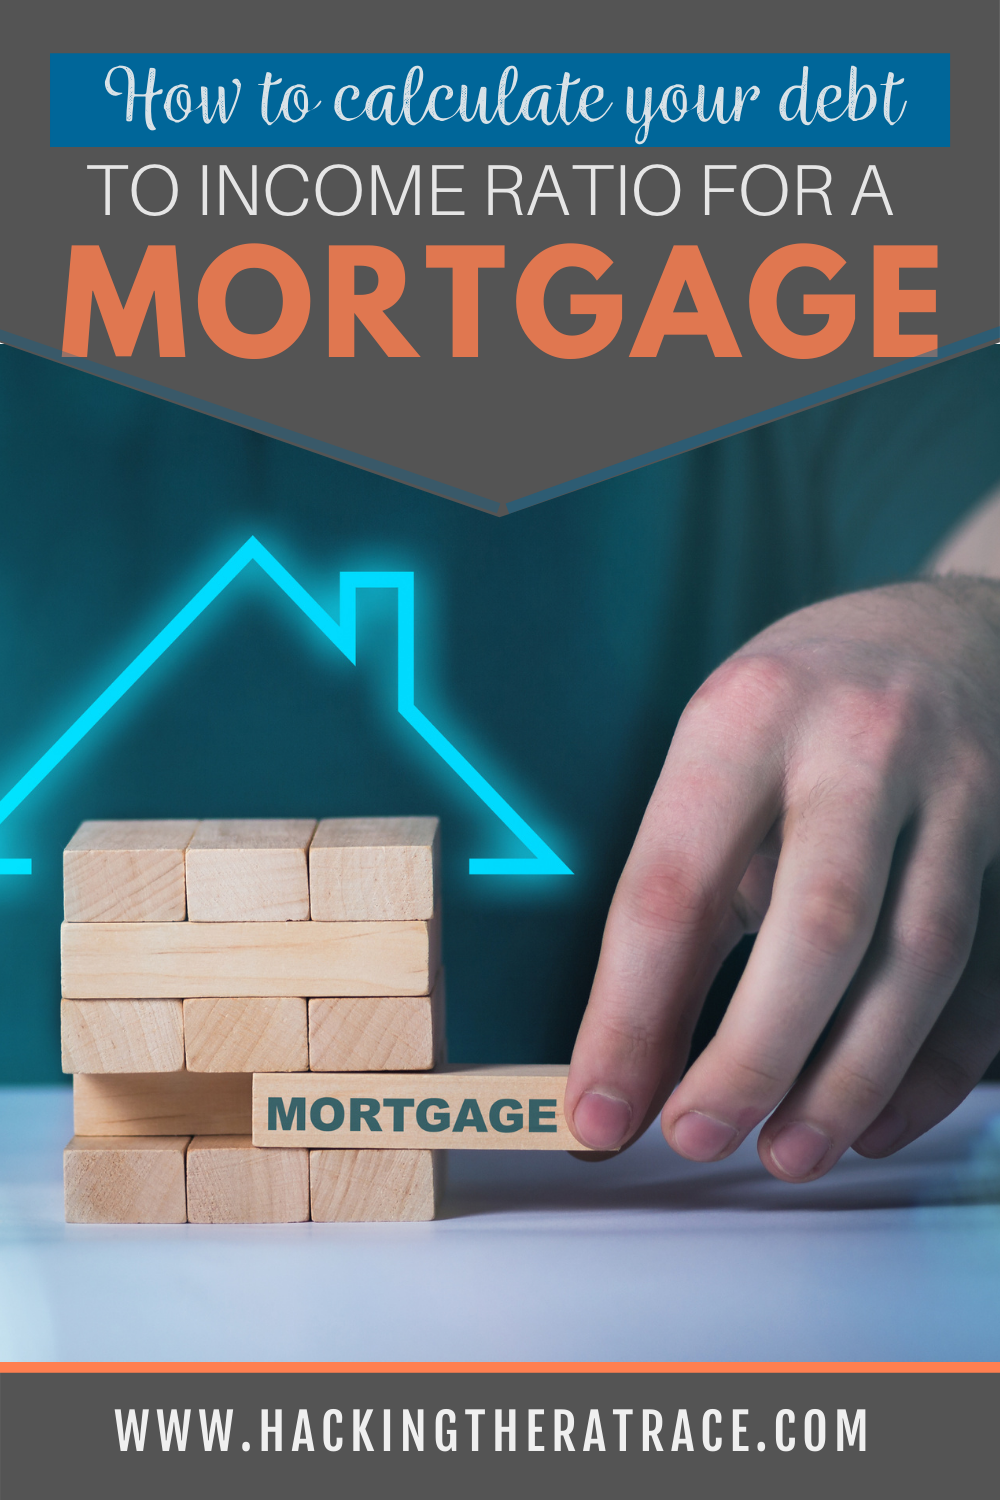 How To Calculate Debt To Income Ratio For A Mortgage Loan In 2020 Debt To Income Ratio Mortgage Loans Mortgage